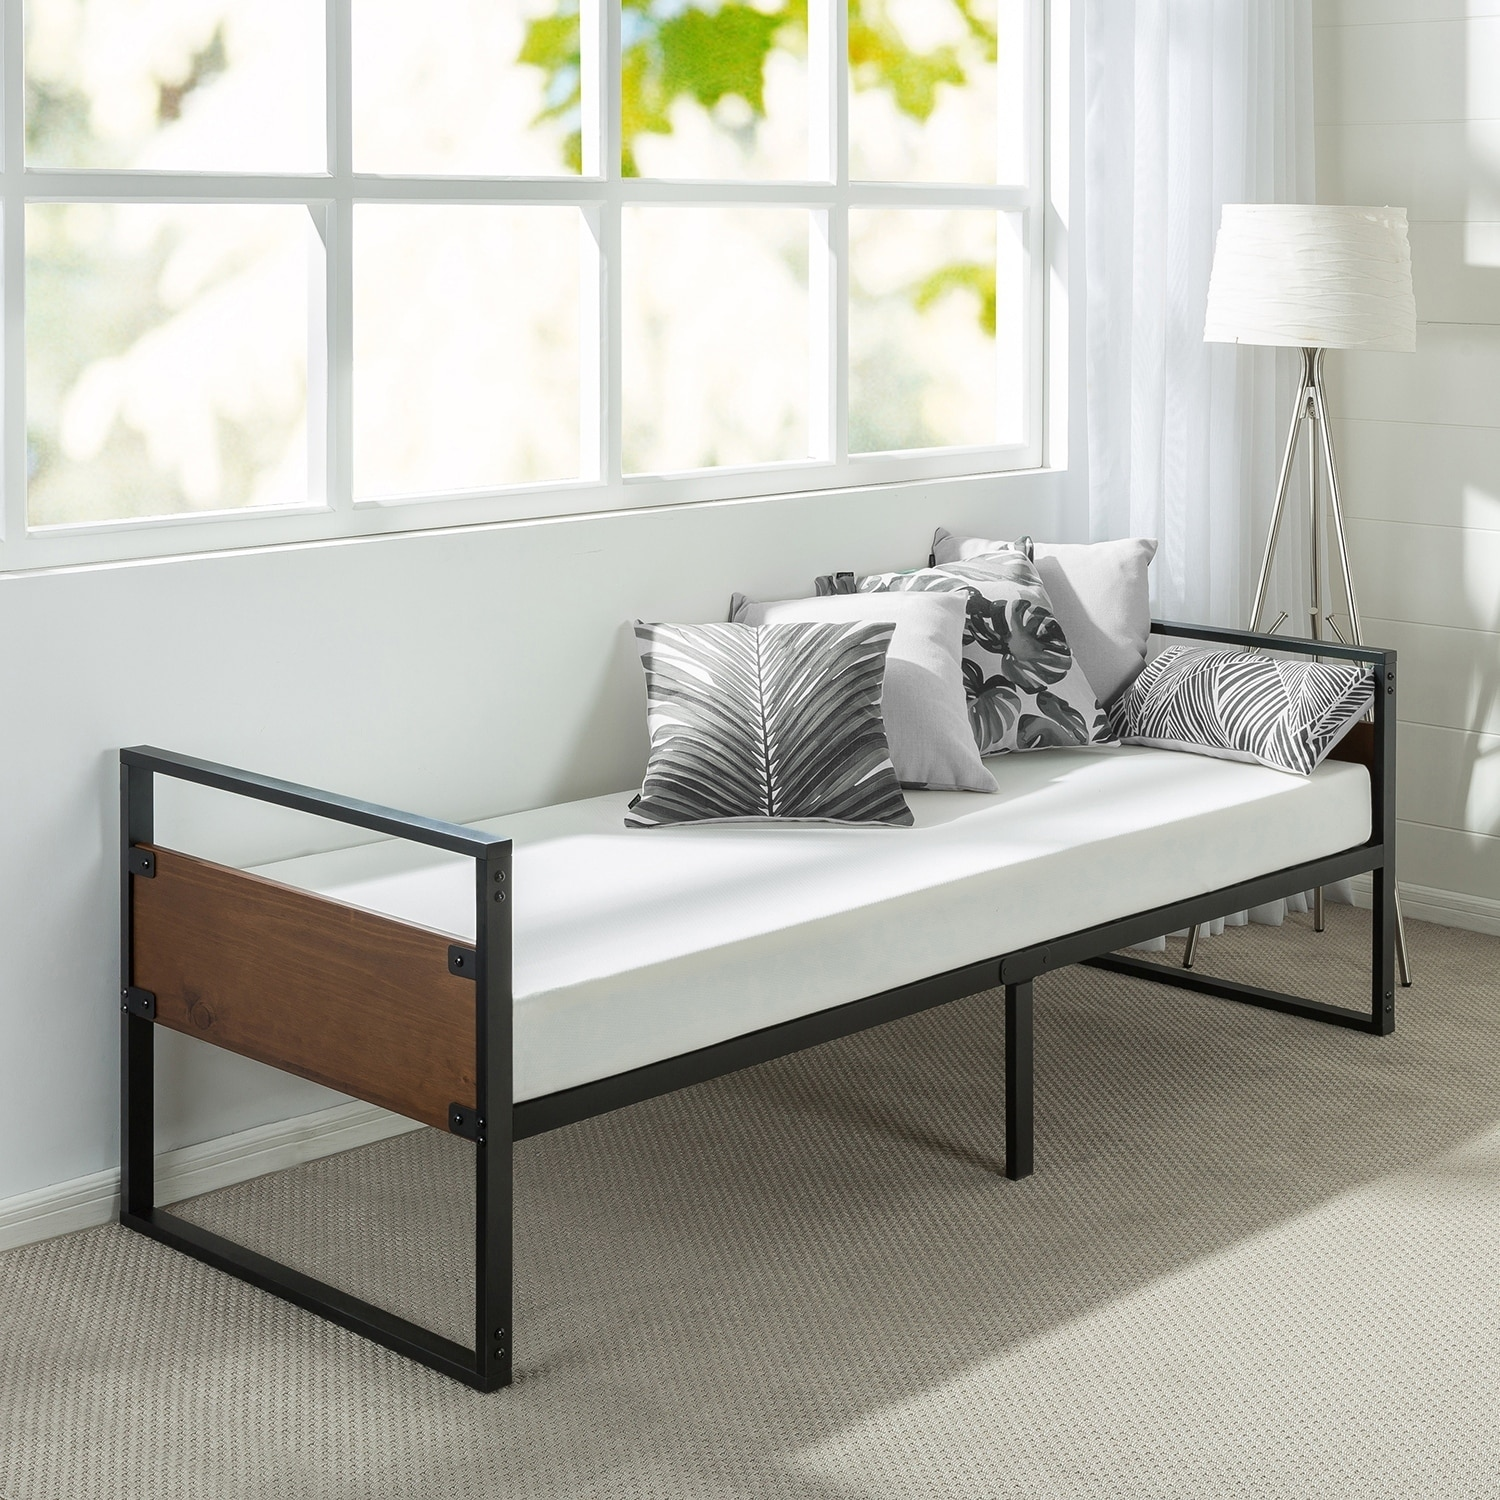 Shop Priage Ironline 30 Inch Narrow Size Day Bed Frame and Foam ...